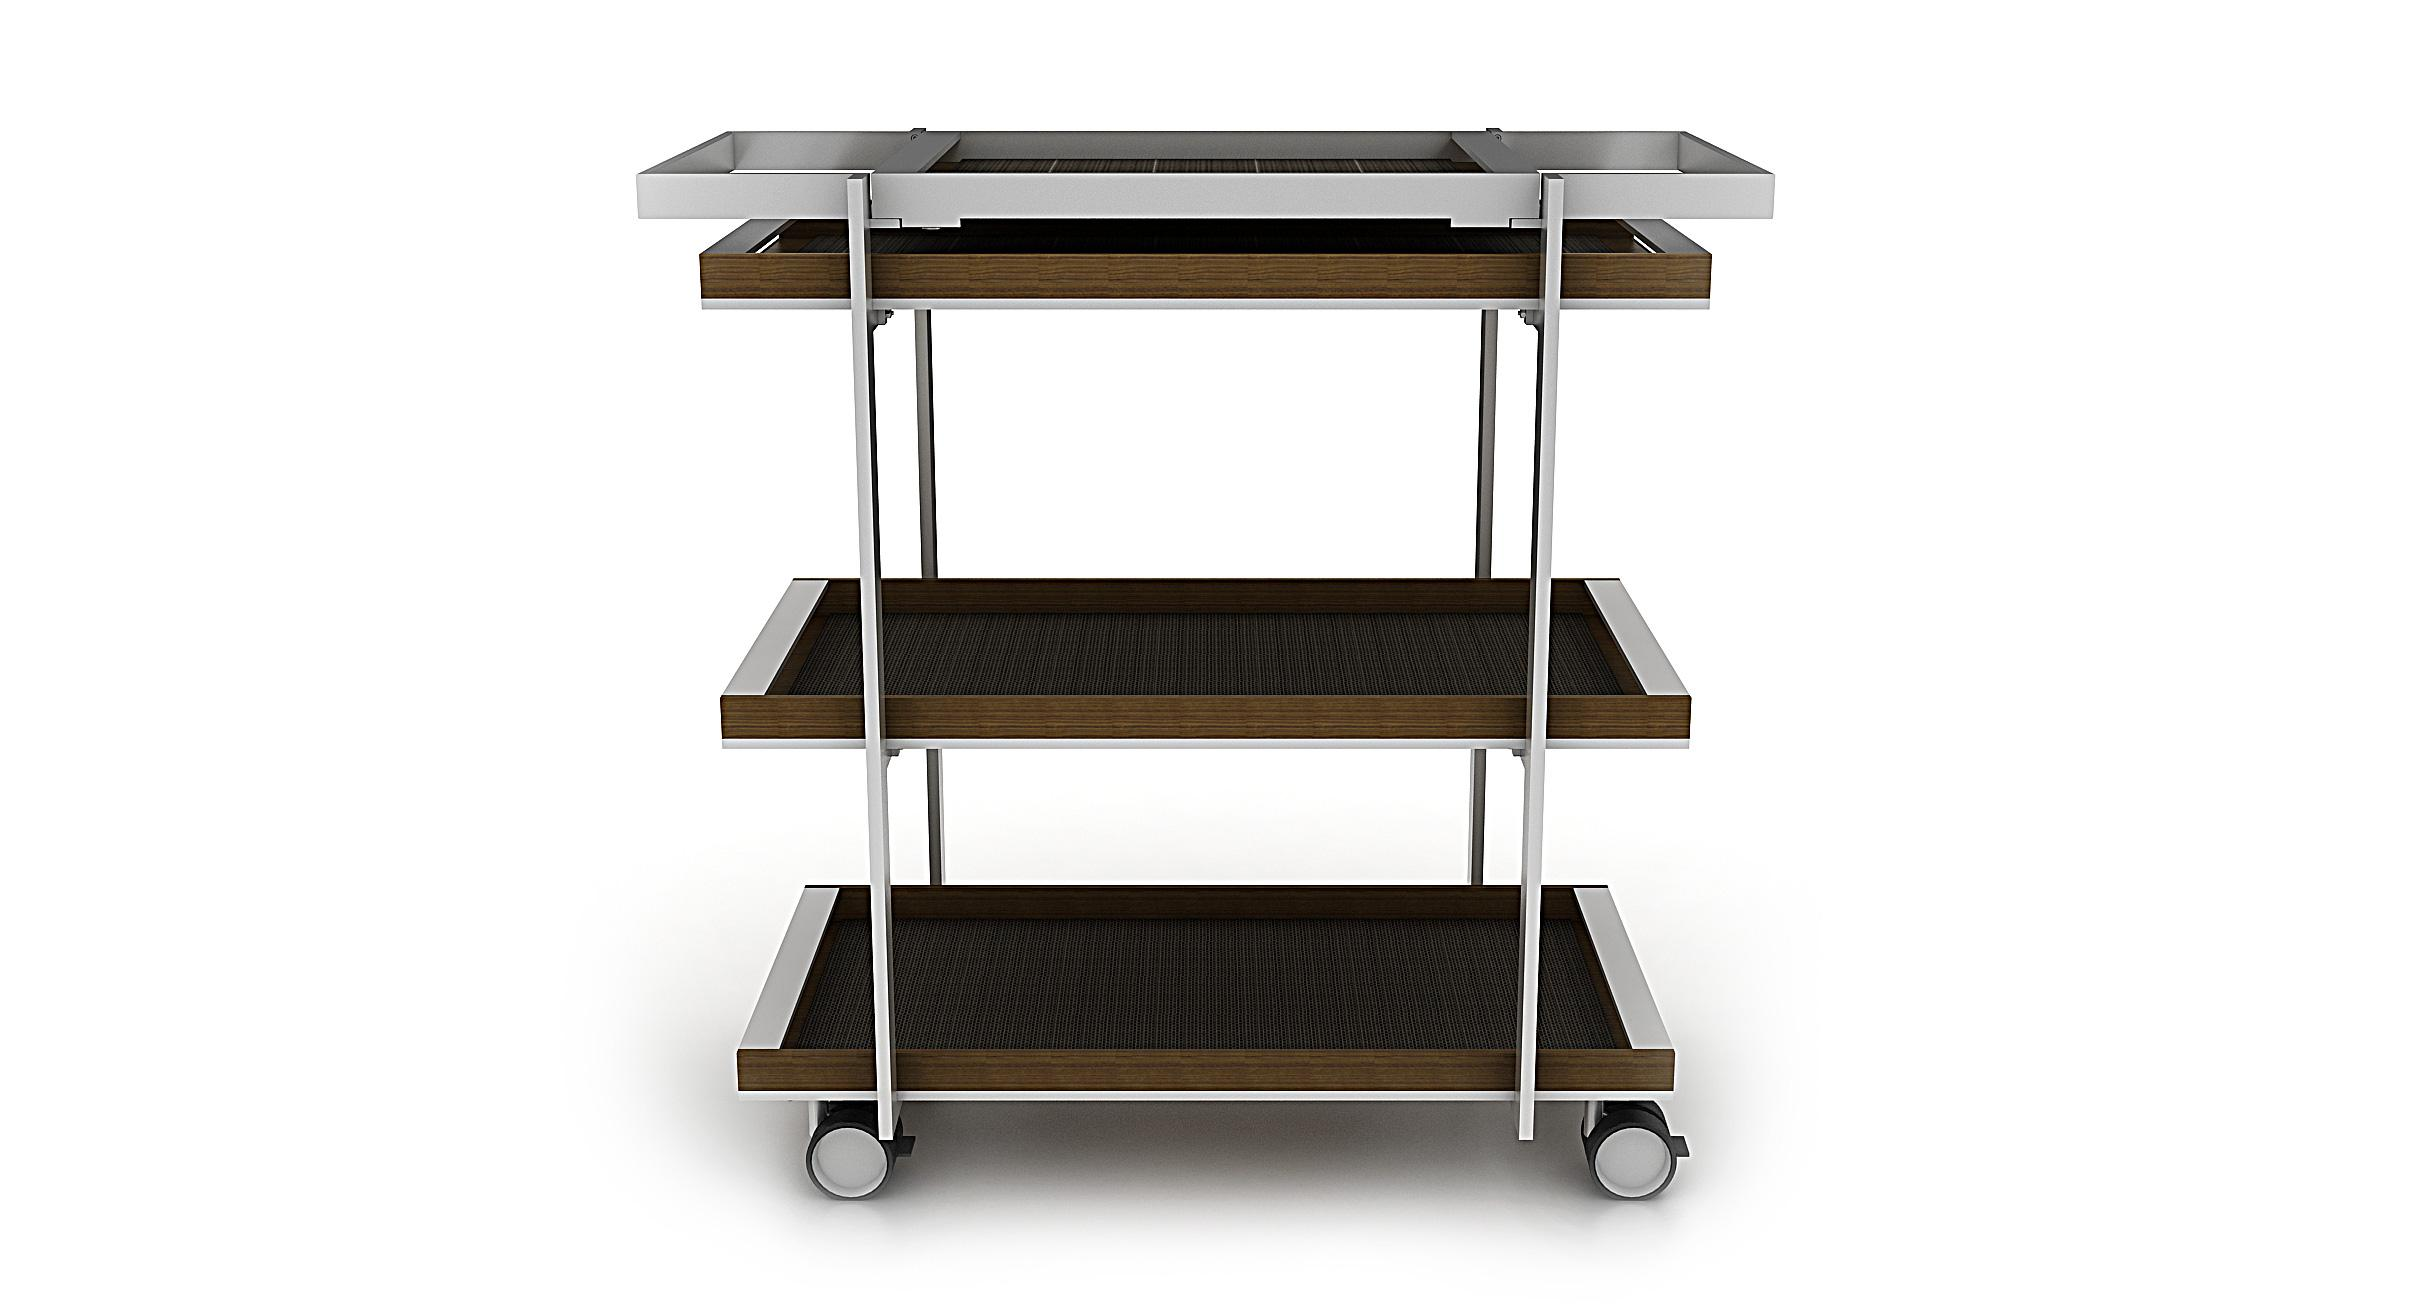 Porter provides three generous shelves and features a distinctive removable tray to serve fine design and function in equal measure.